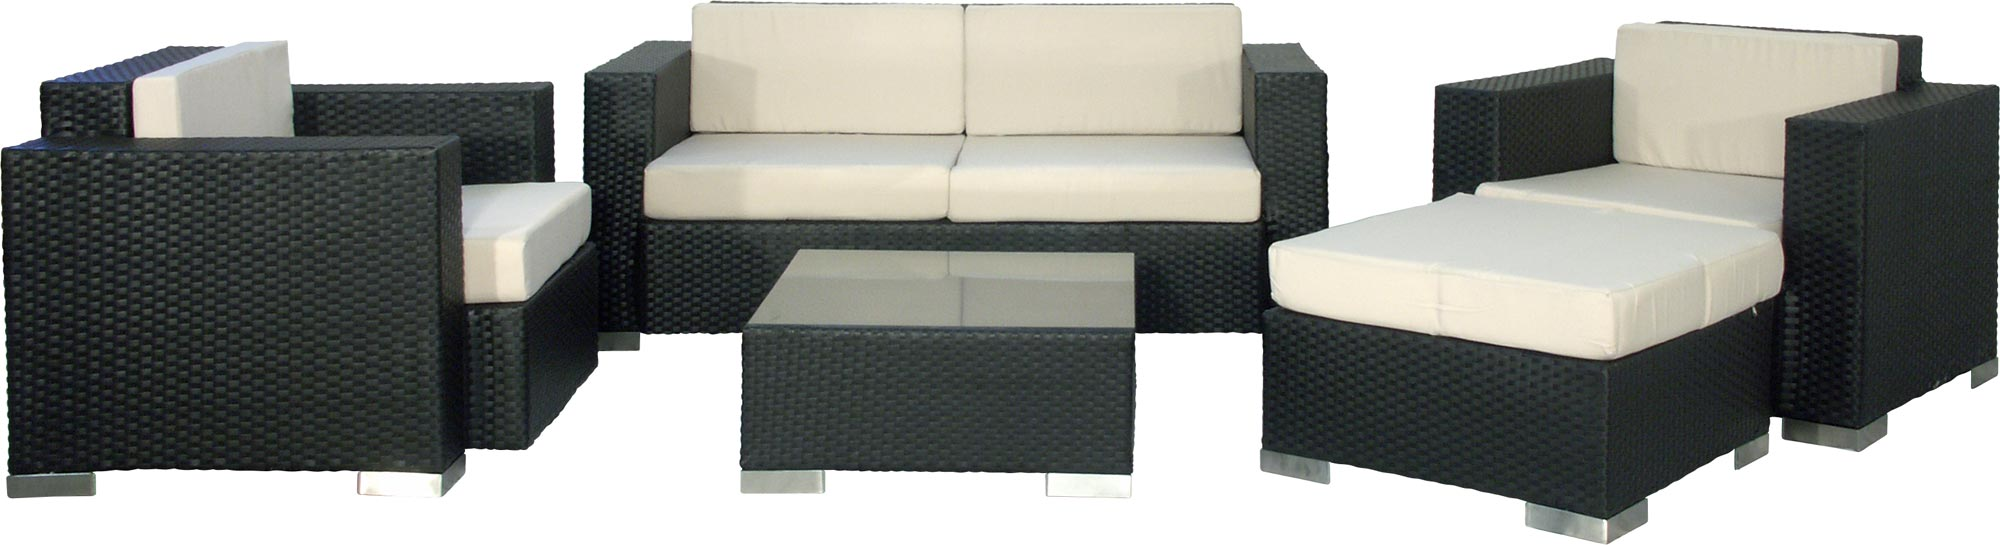 premium xxl loungegruppe gartenm bel polyrattan sitzgruppe gartenm bel lounge ebay. Black Bedroom Furniture Sets. Home Design Ideas